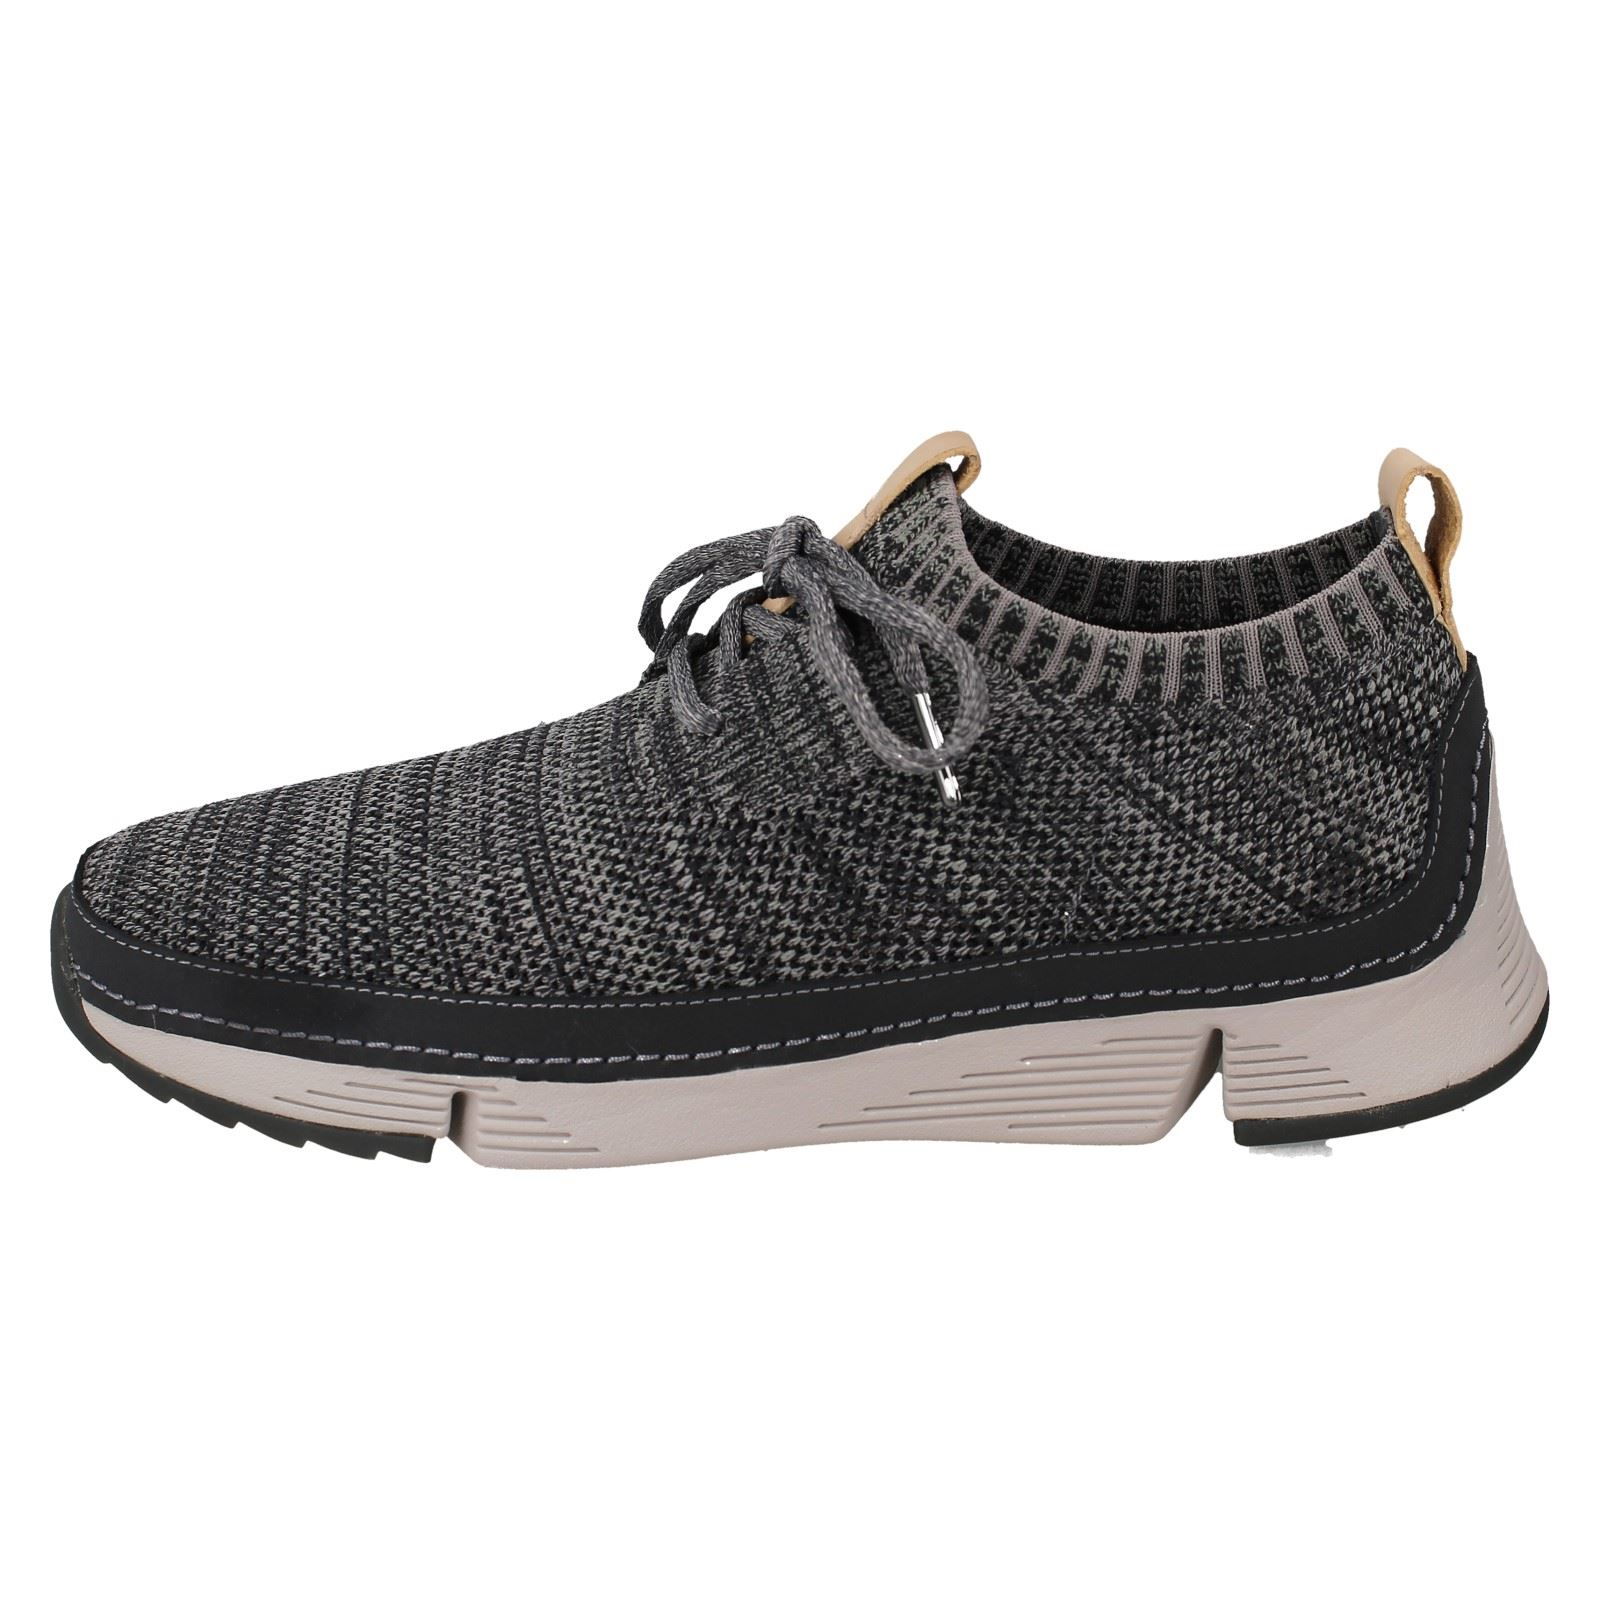 Herren Clarks Casual Sports Lace Up Sports Casual Schuhes Tri Native debeb2